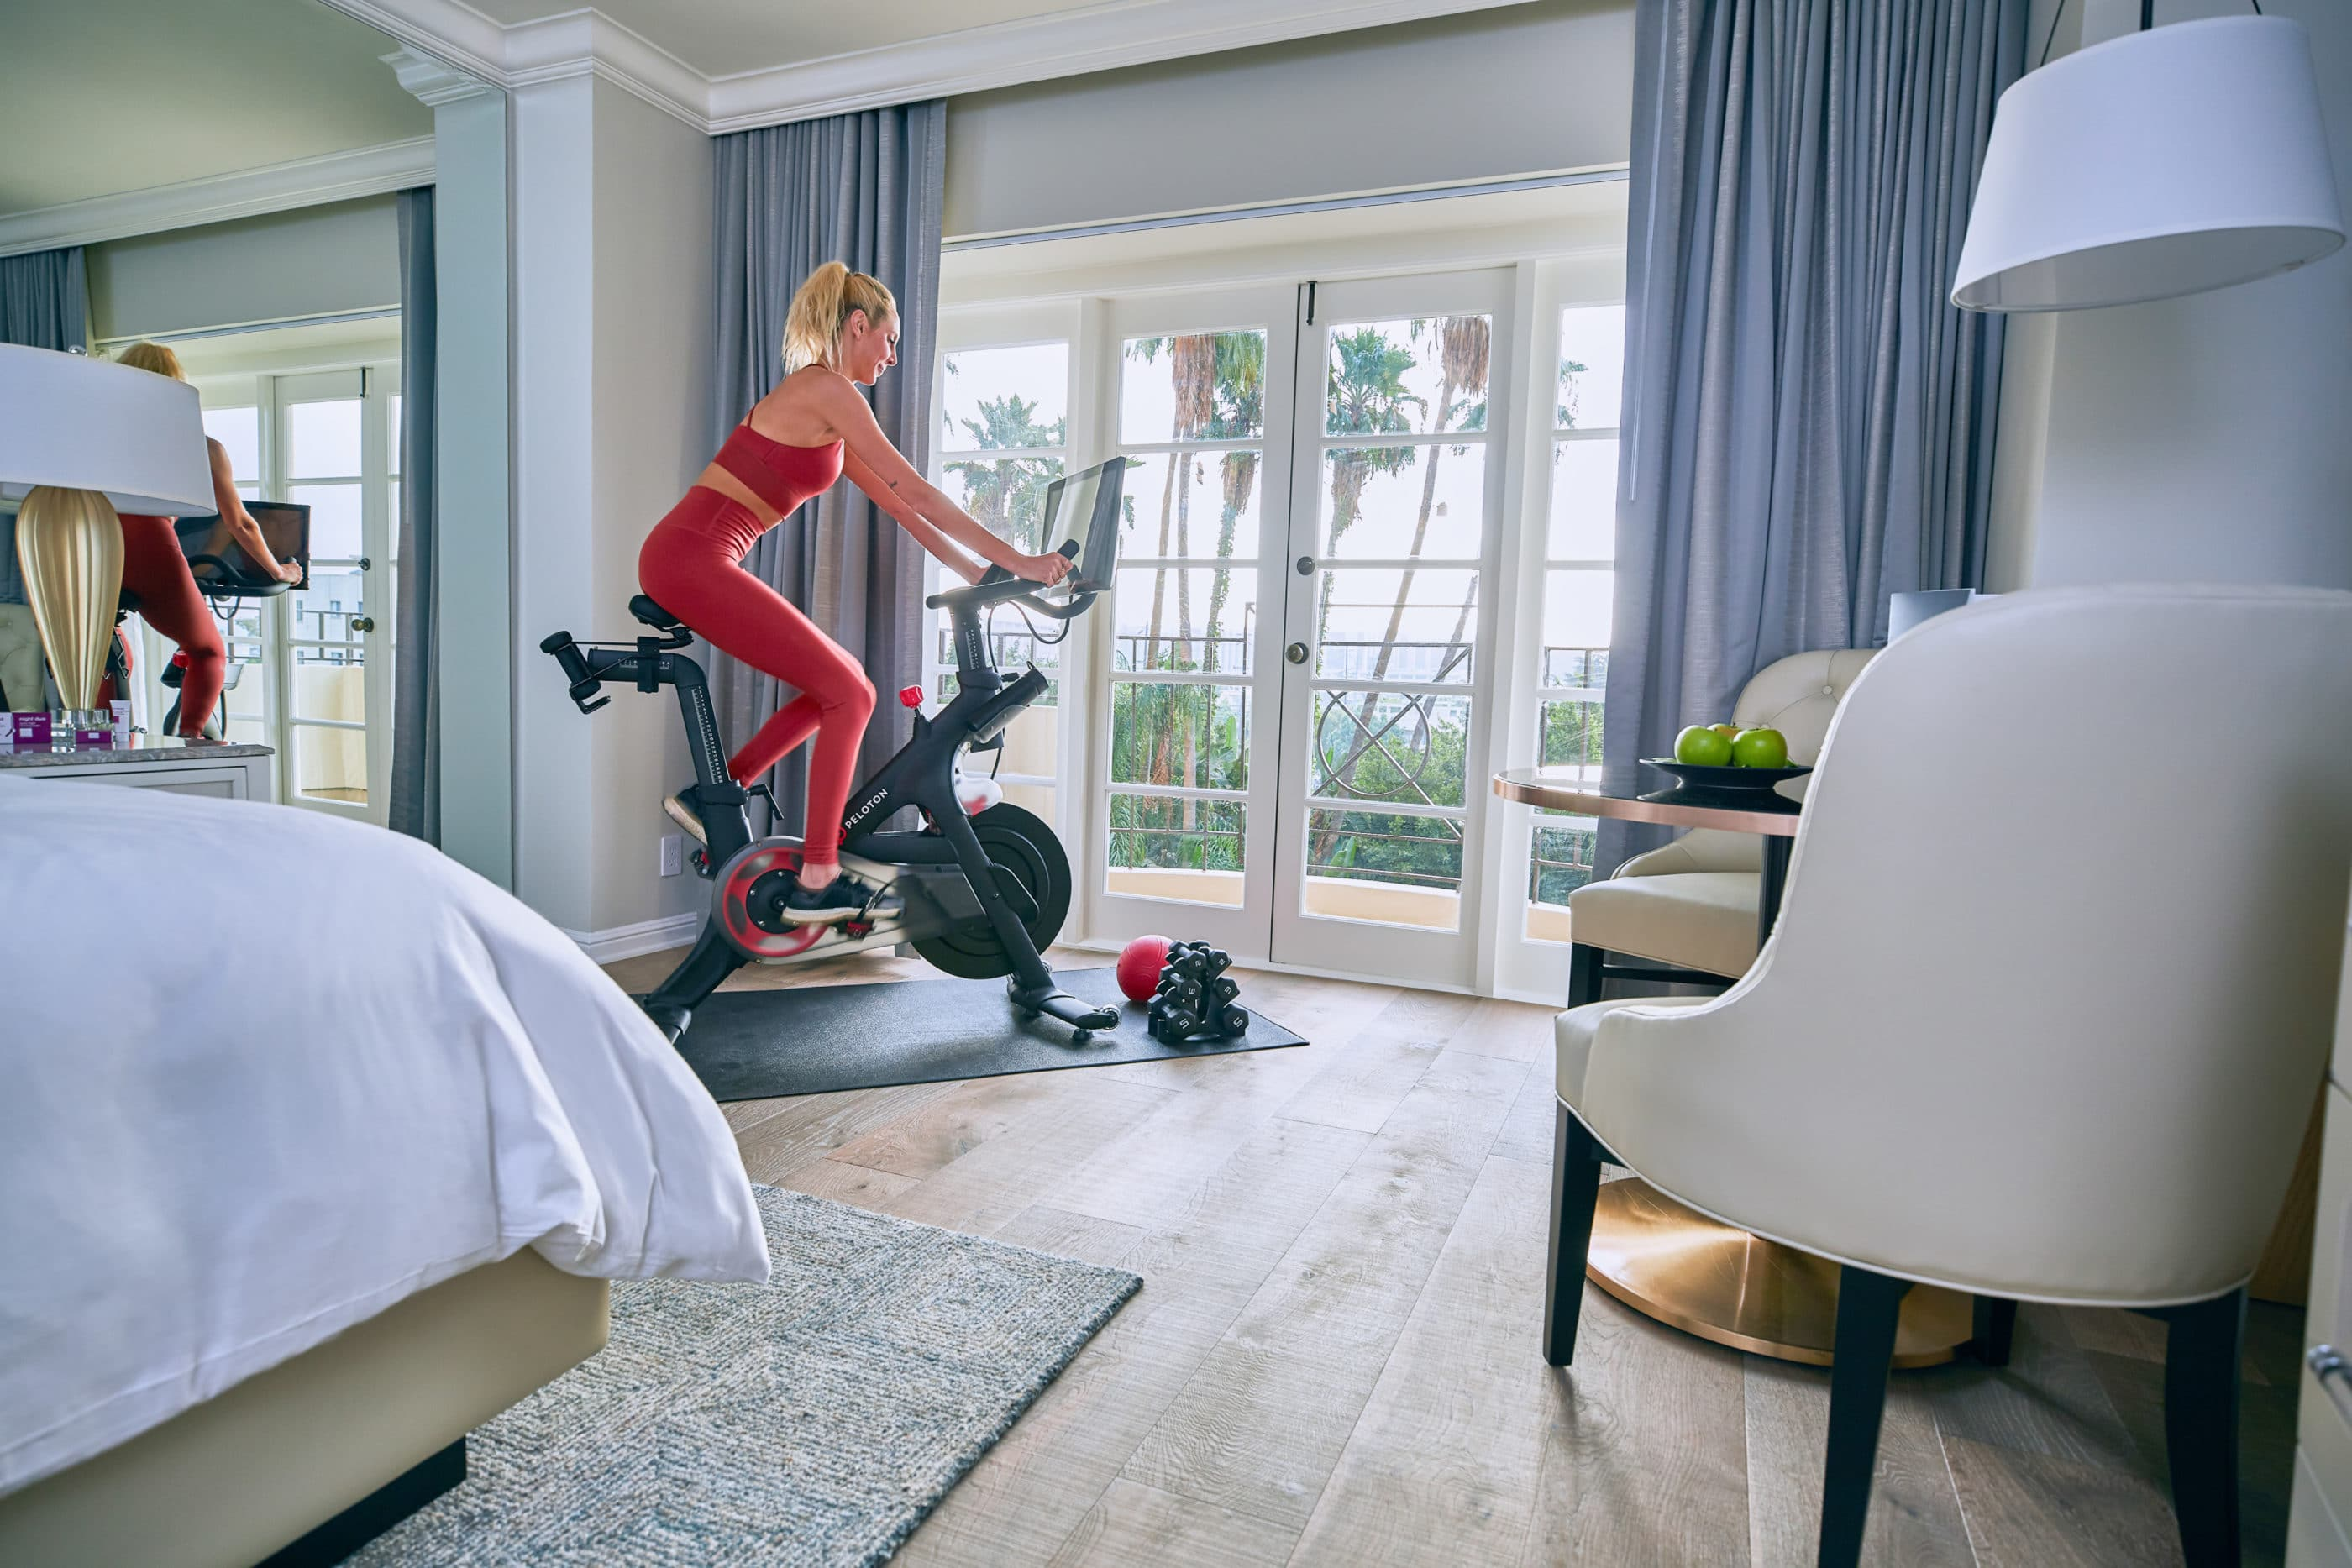 A woman rides a stationary bike in her room at Four Seasons Los Angeles